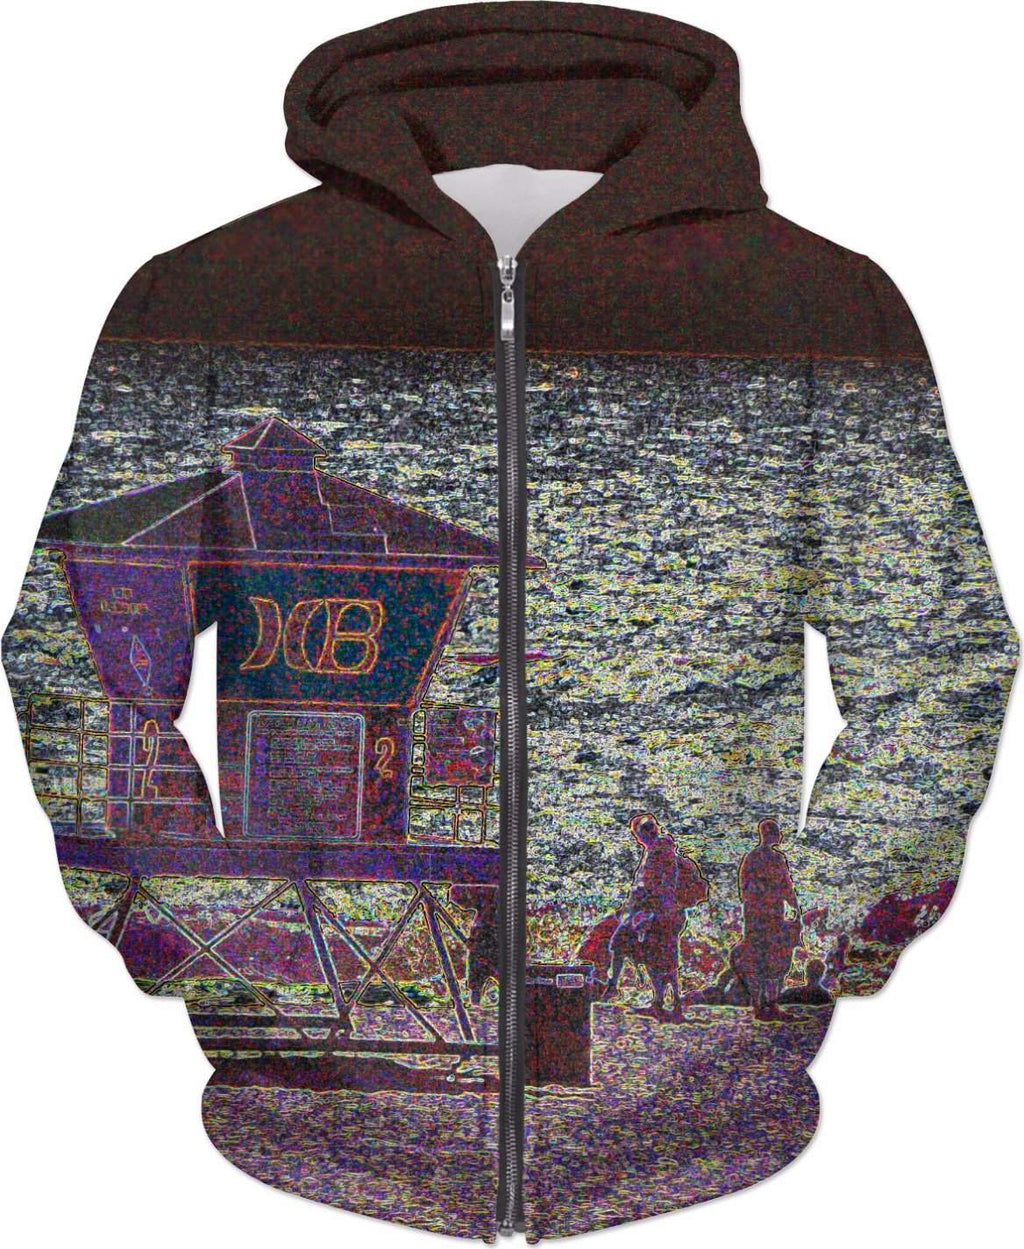 HB Custom Hoodie-Hoodies-HRH Studio Boutique